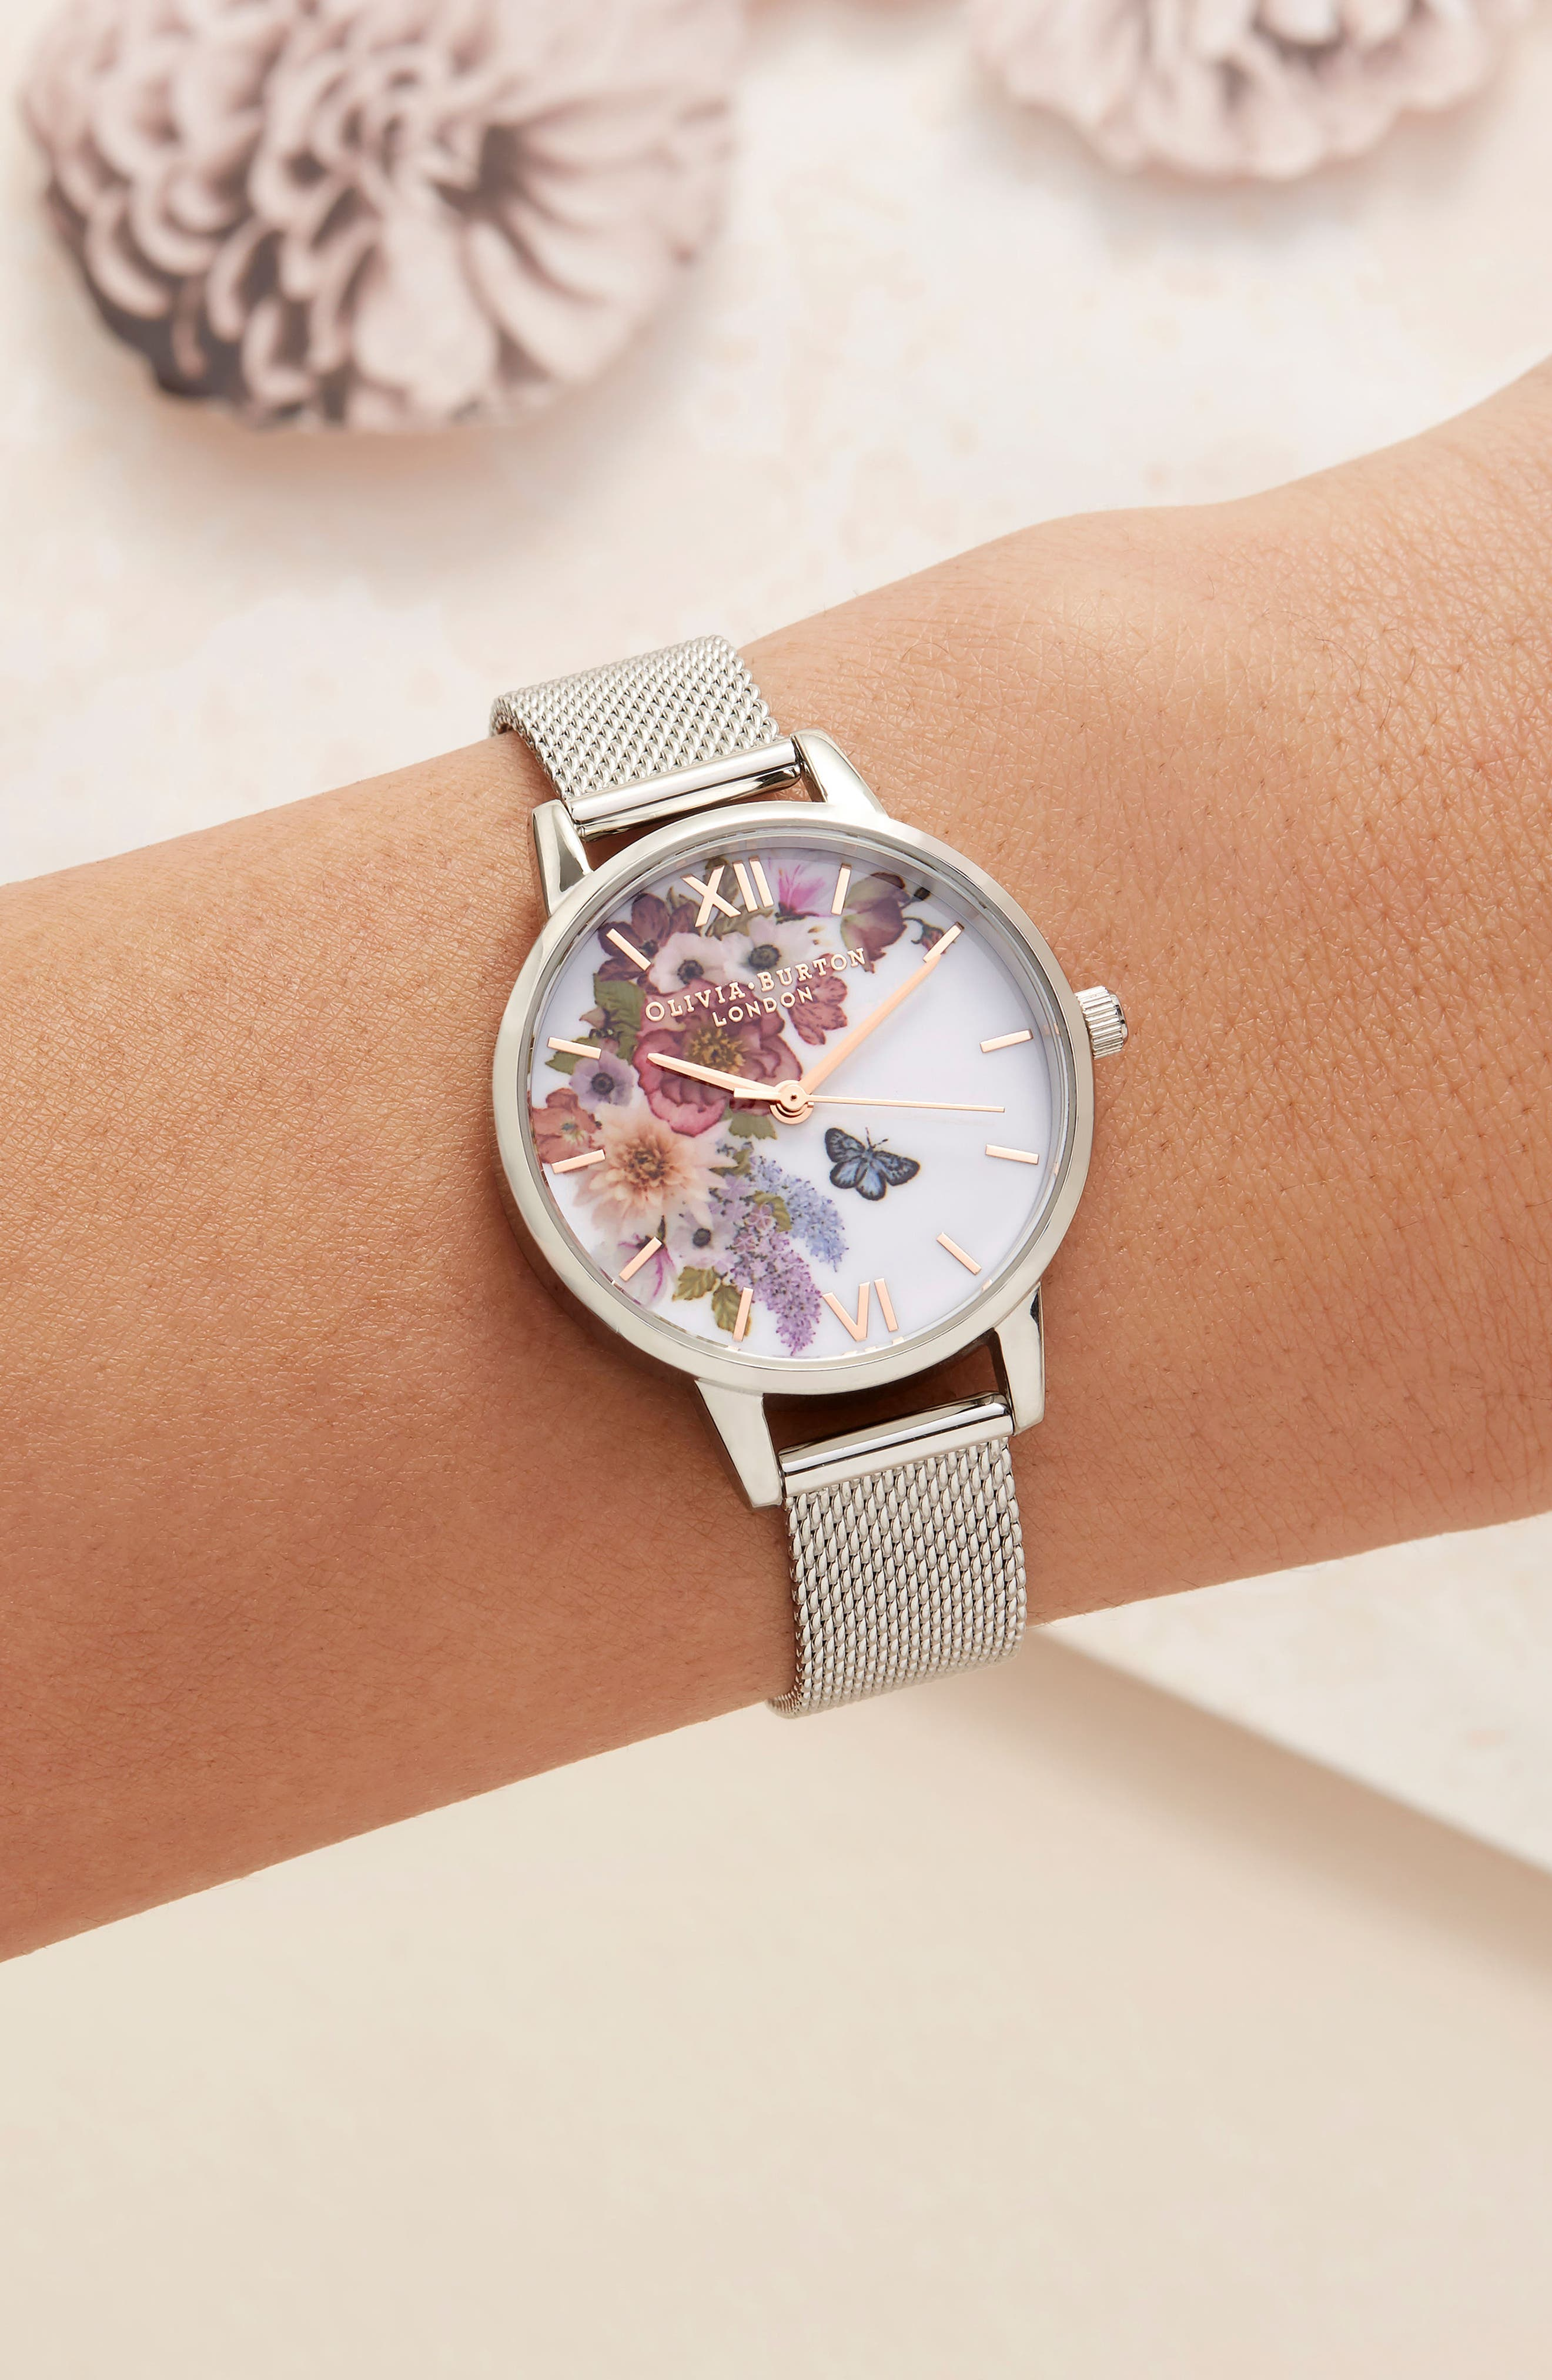 Enchanted Garden Mesh Strap Watch, 30mm,                             Alternate thumbnail 8, color,                             SILVER/ FLORAL/ ROSE GOLD